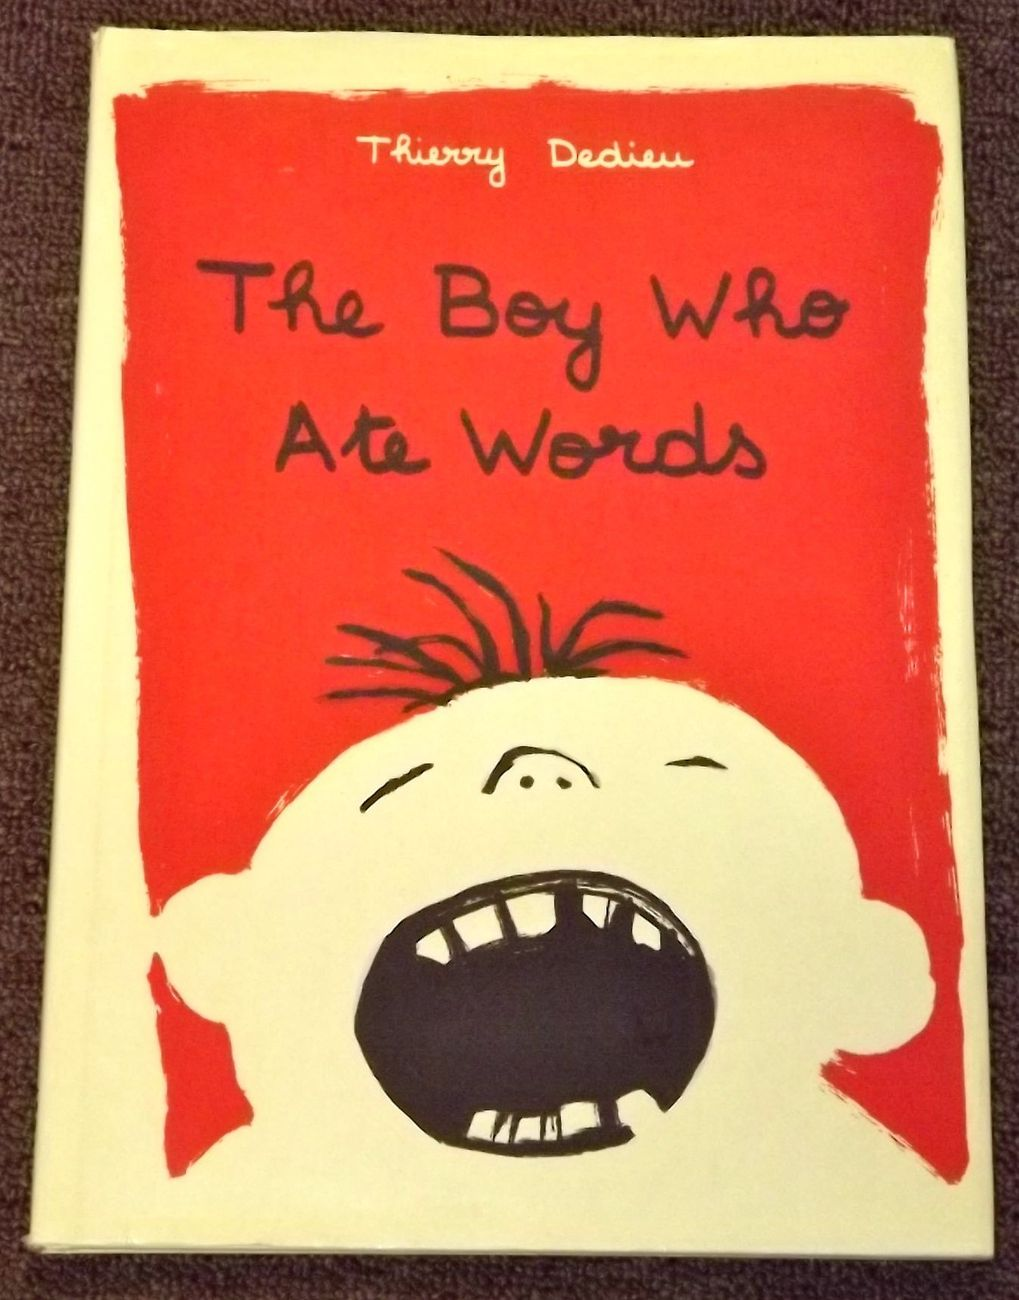 Primary image for The Boy Who Ate Words by Thierry Dedieu